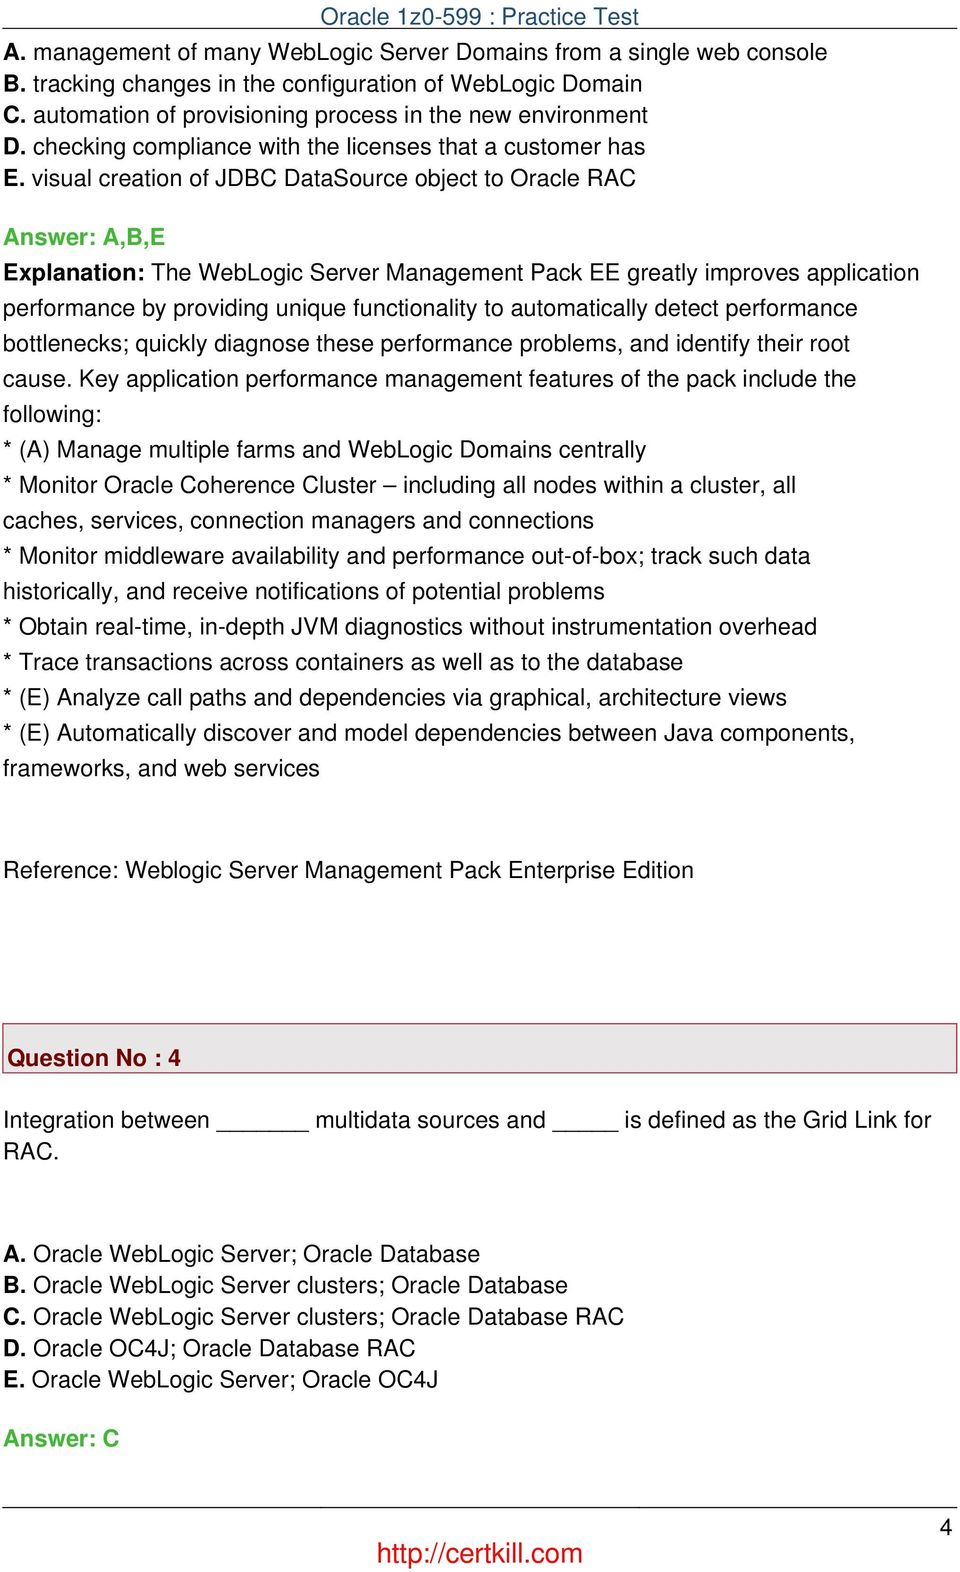 visual creation of JDBC DataSource object to Oracle RAC Answer: A,B,E Explanation: The WebLogic Server Management Pack EE greatly improves application performance by providing unique functionality to